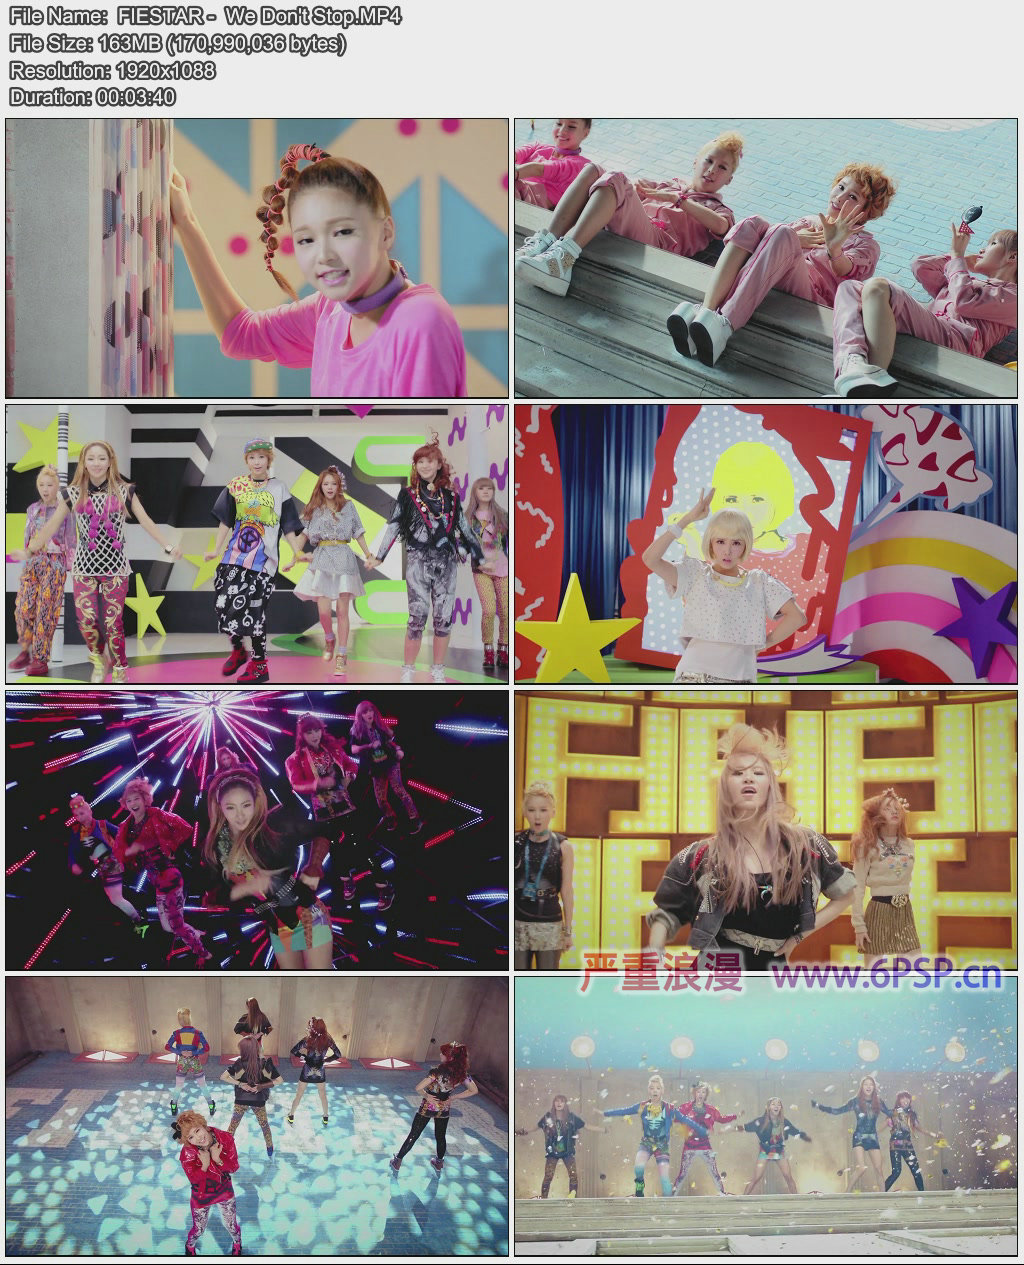 FIESTAR - We Don't Stop.MV.1080p